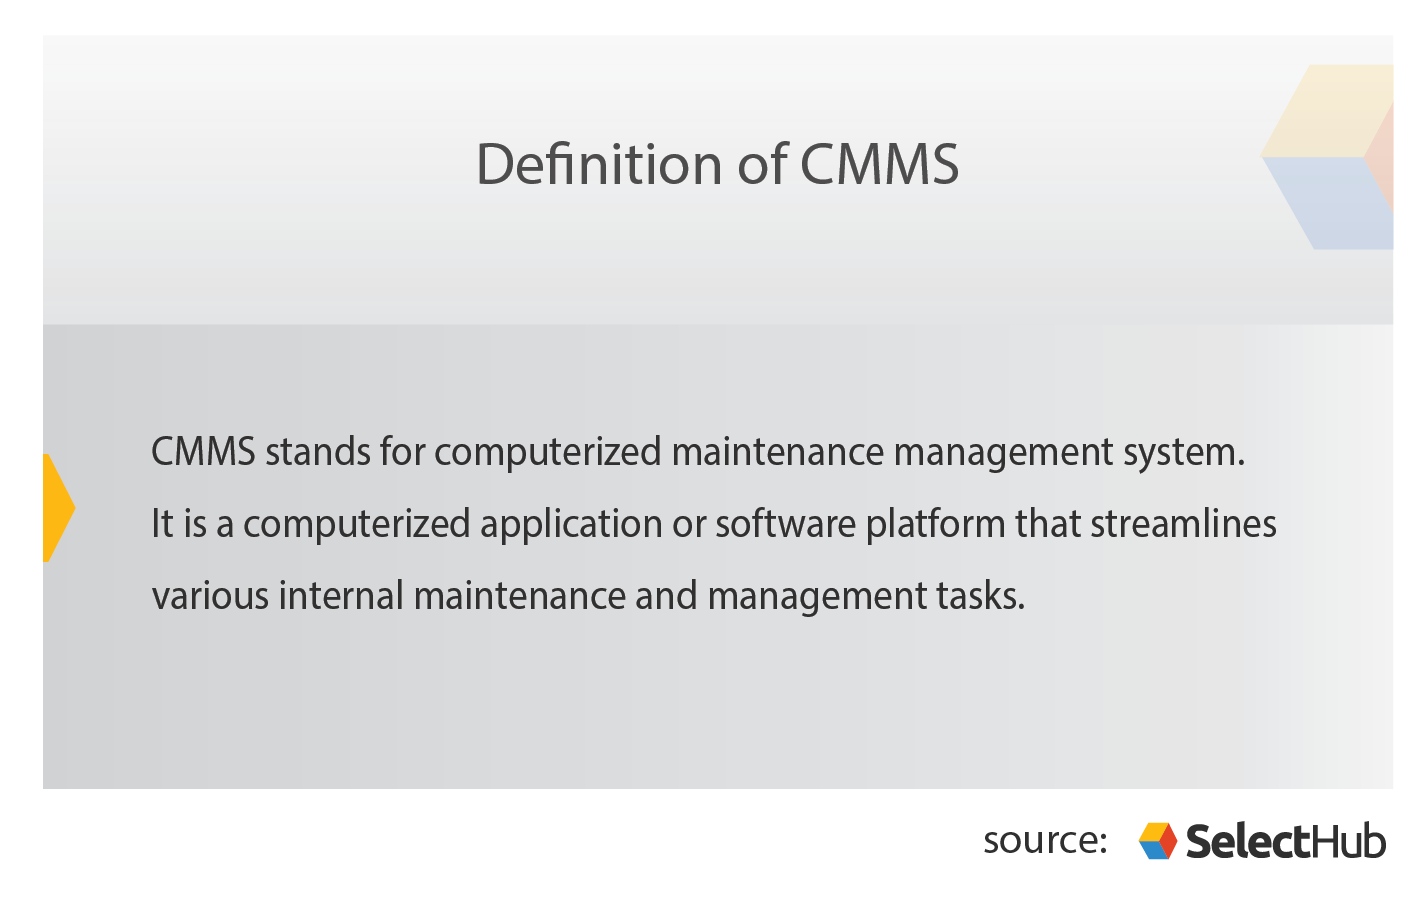 Definition of CMMS